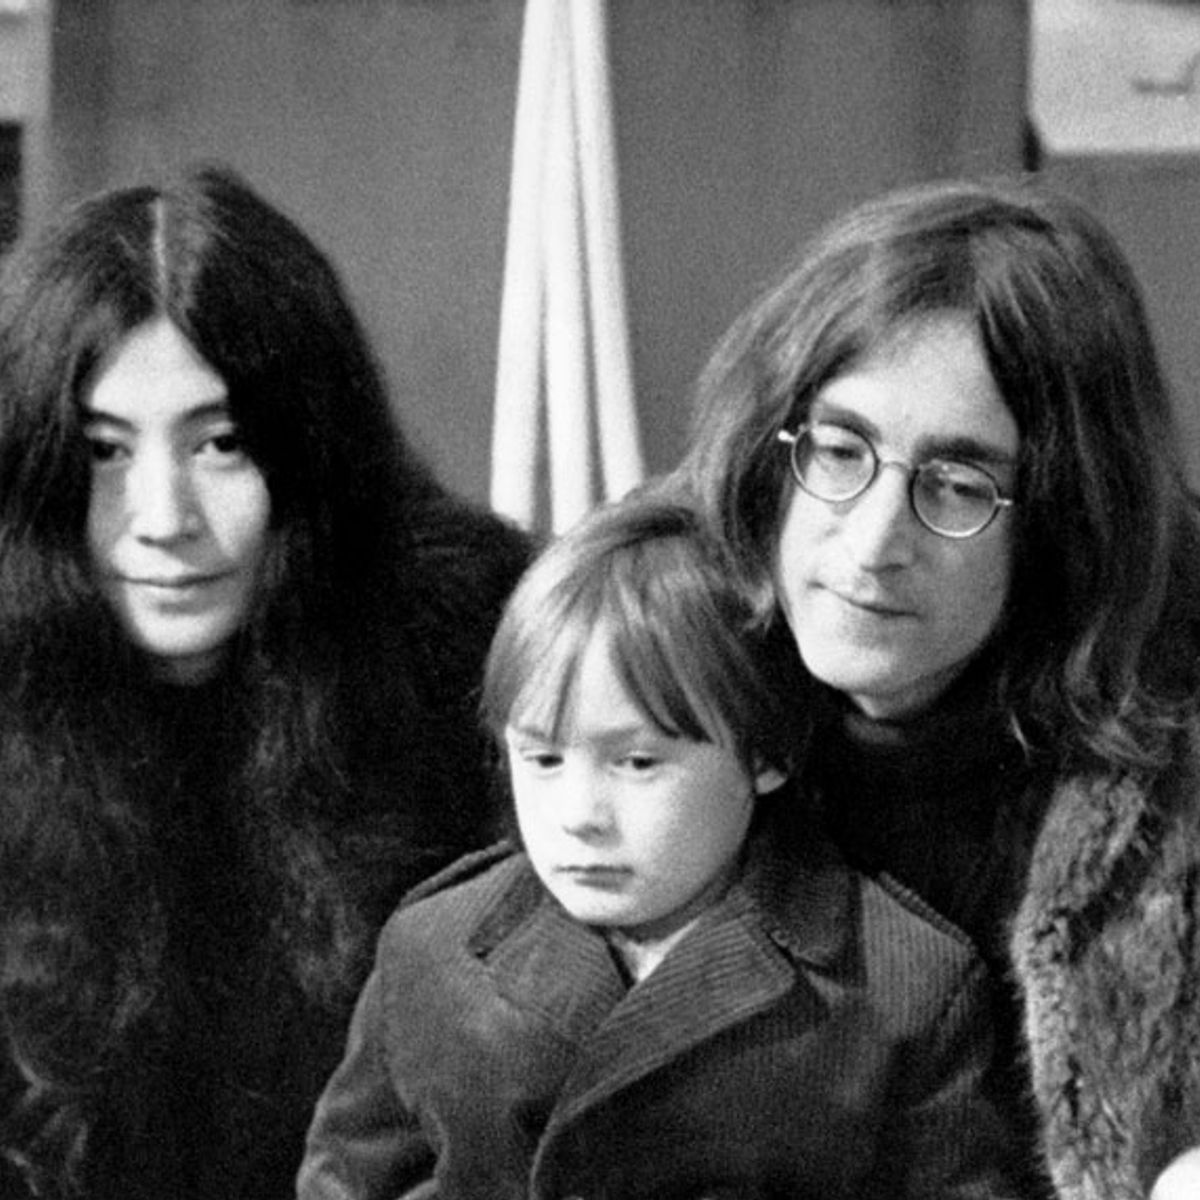 John Lennon at 39, in self-imposed exile